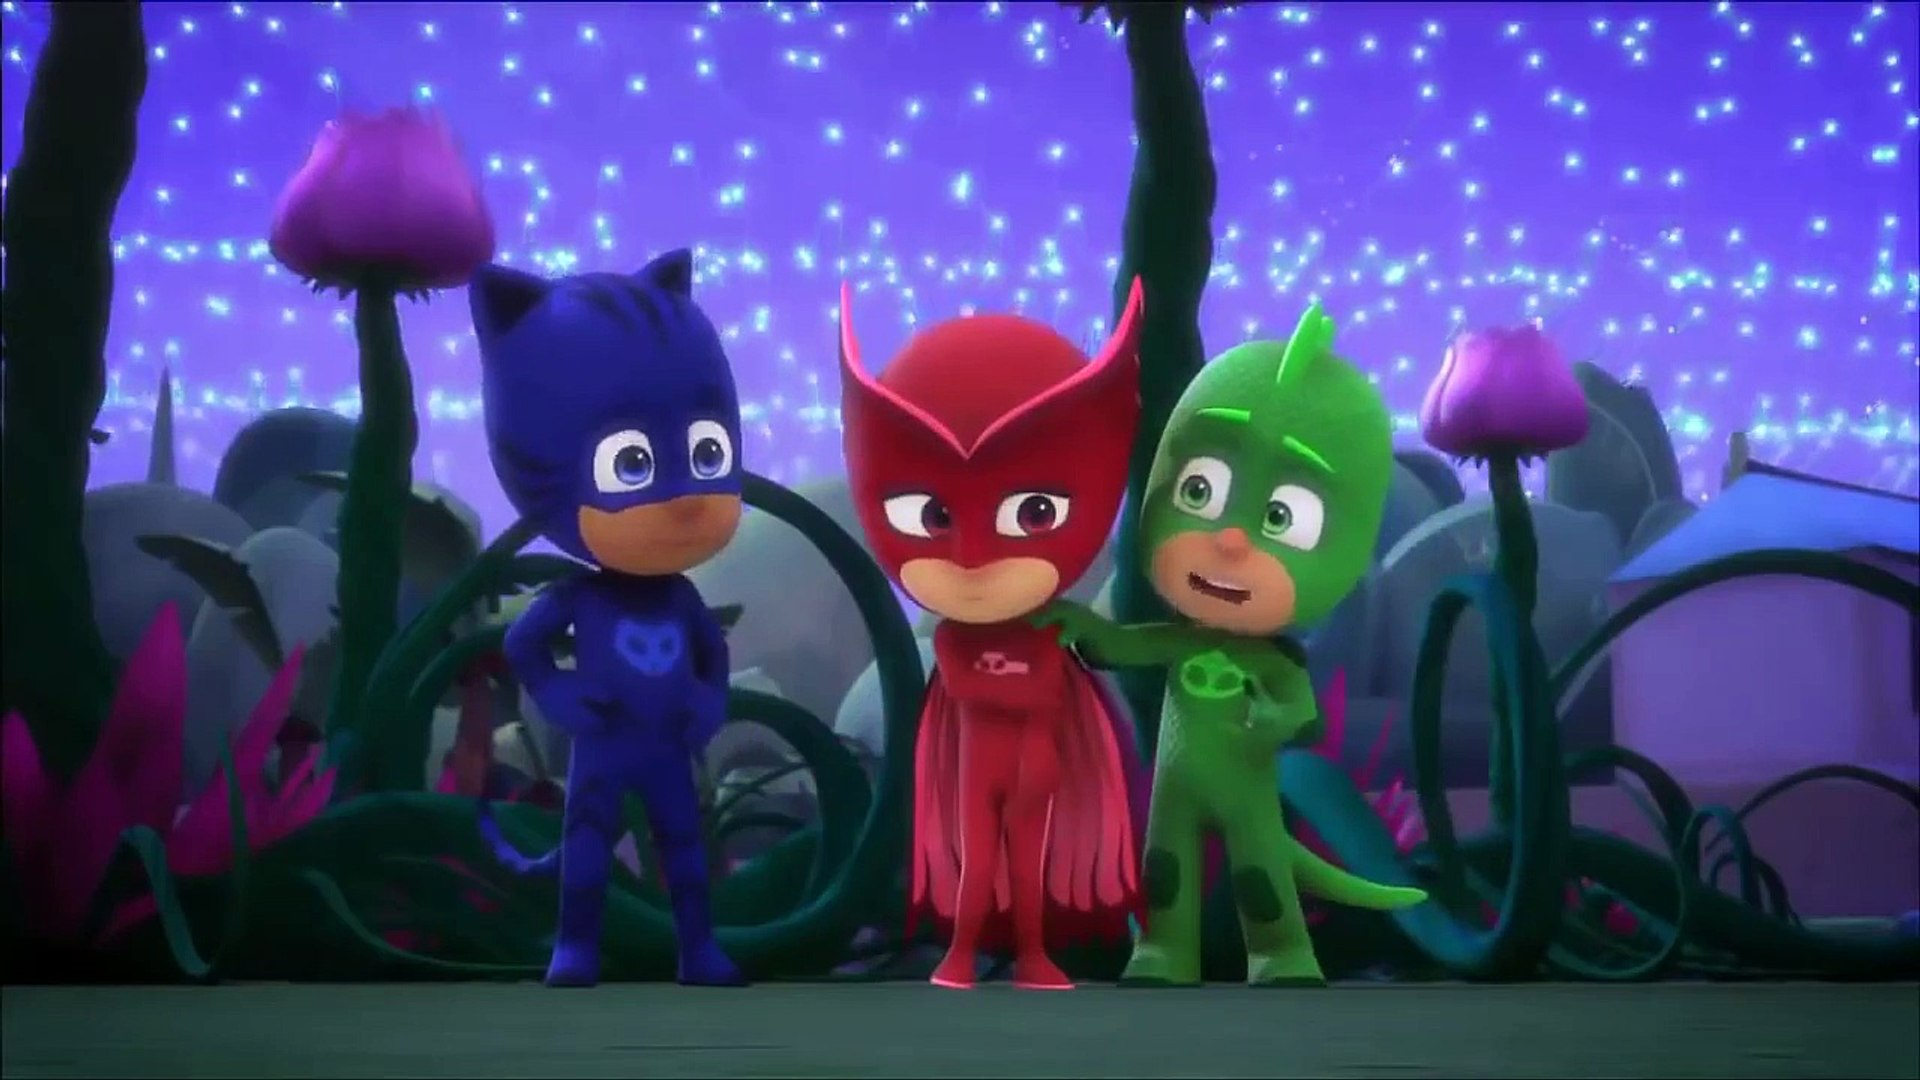 pj masks kids cartoons _  PJ Masks Full Episodes - Superheros Cartoons For Kids - Disney Junior , ca